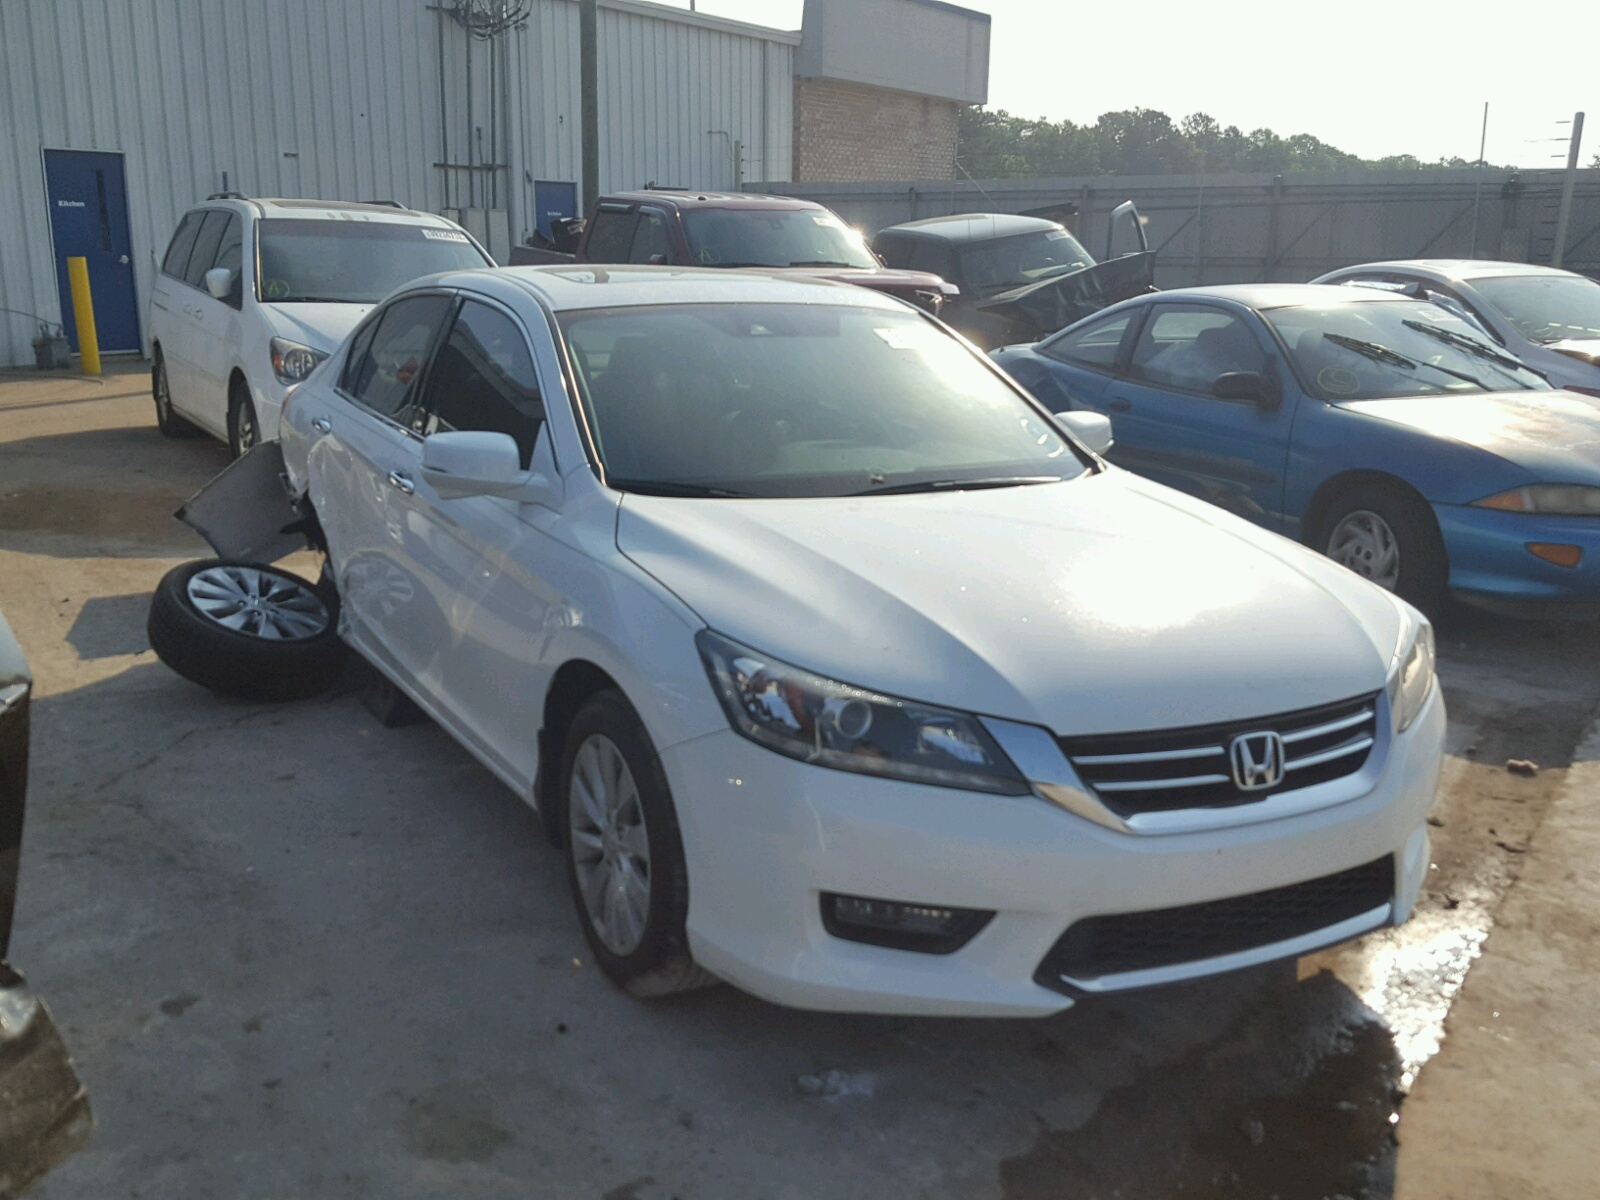 2014 Honda Accord EXL for sale at Copart Montgomery AL Lot